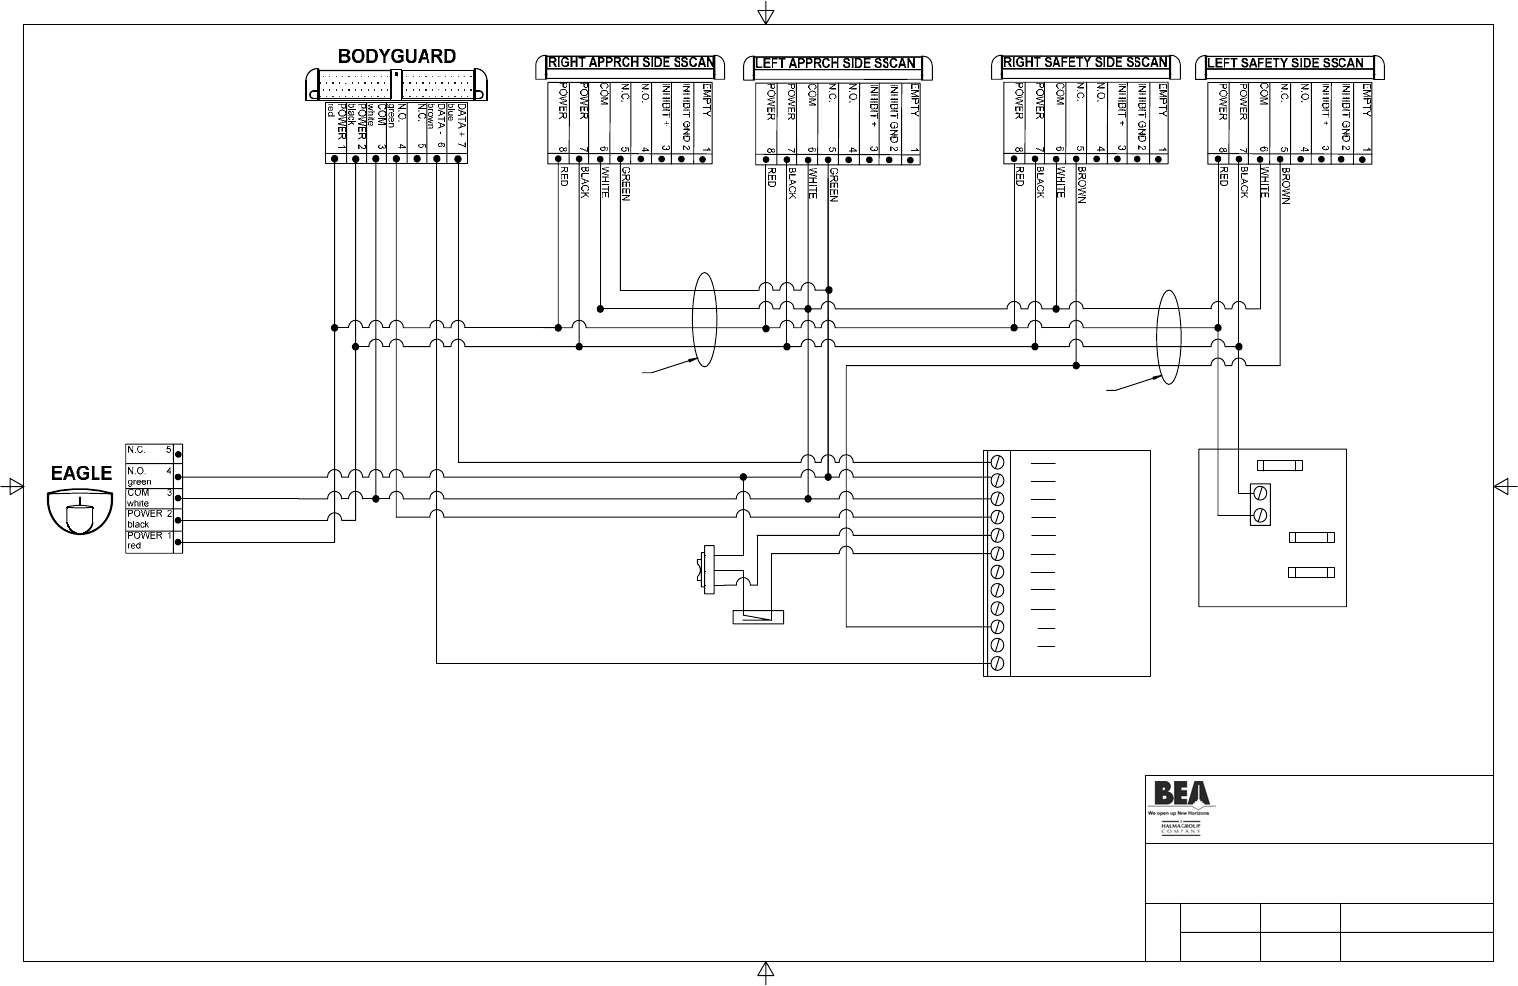 94039b03 c6f0 4630 ae4b cd4abc395ce4 bg9?resize\=665%2C432 horton c2150 wiring diagram horton profiler series 2000 \u2022 free Basic Electrical Wiring Diagrams at webbmarketing.co